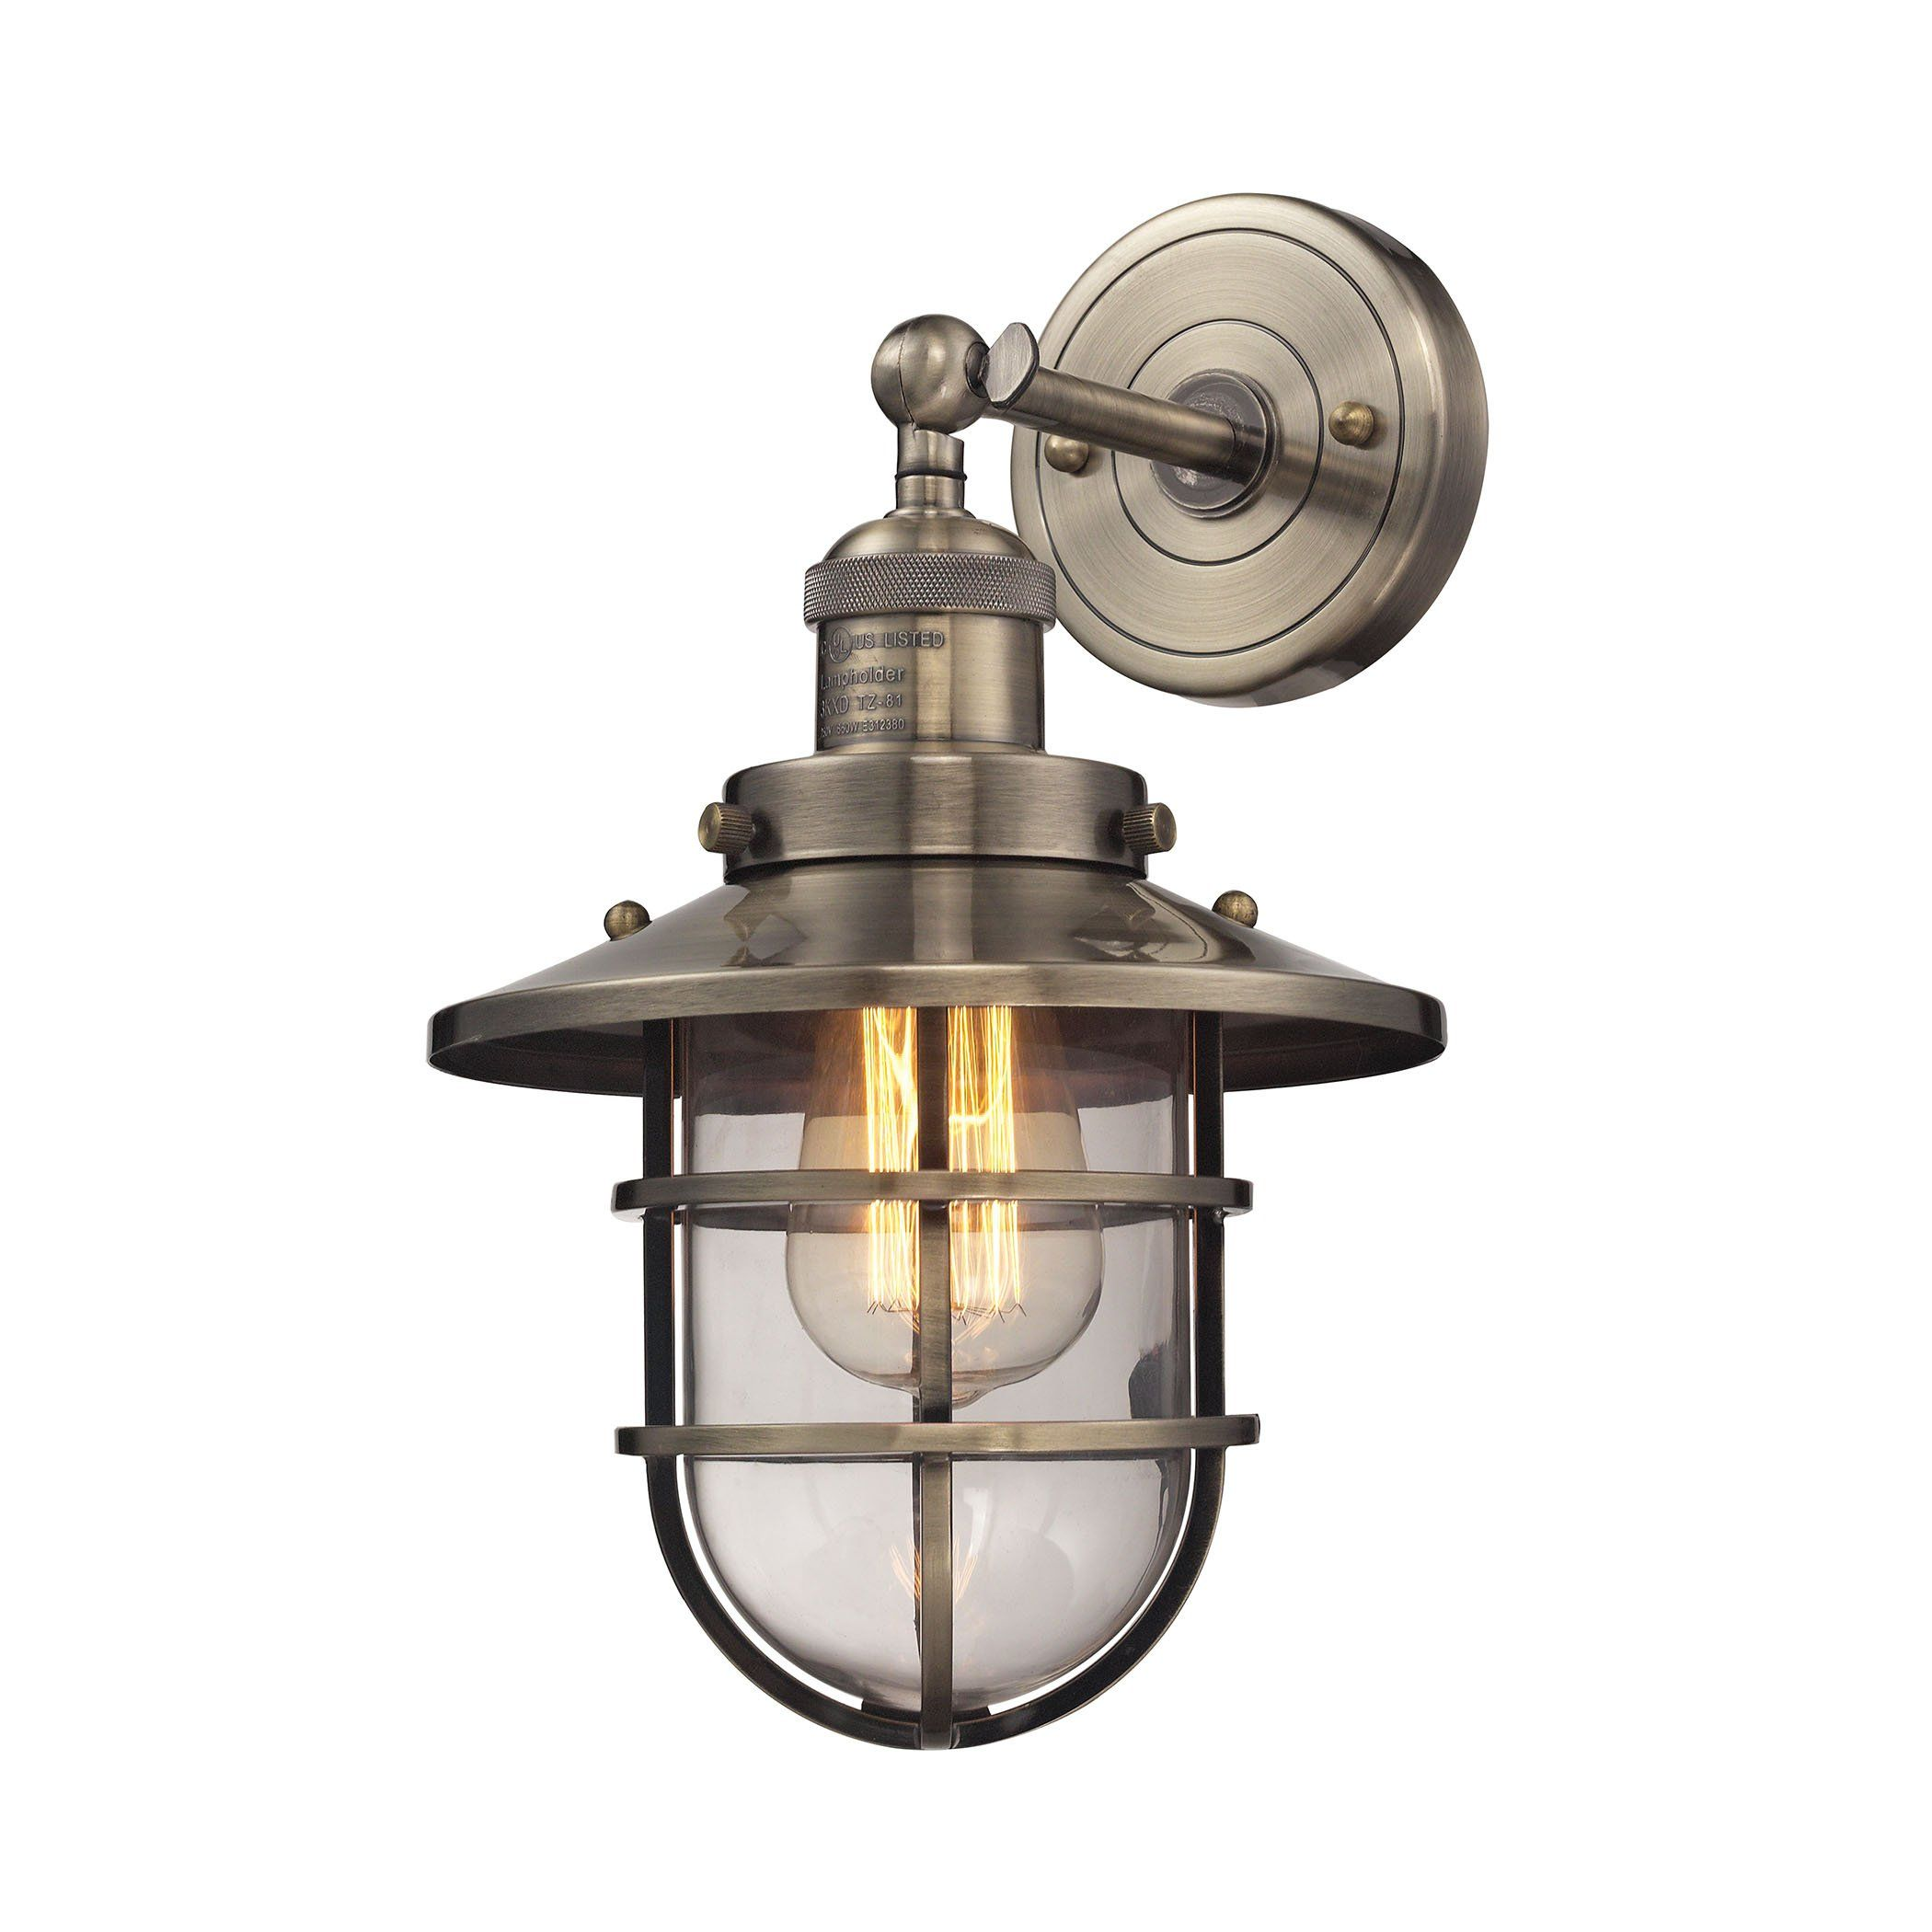 sea satin sinker sconce nickel brushed vanities lighting nautical lights kitch ideas spark bathroom inside luxury stunning light gorgeous bar trend with astounding for vintage theme outdoor style sconces vanity simple